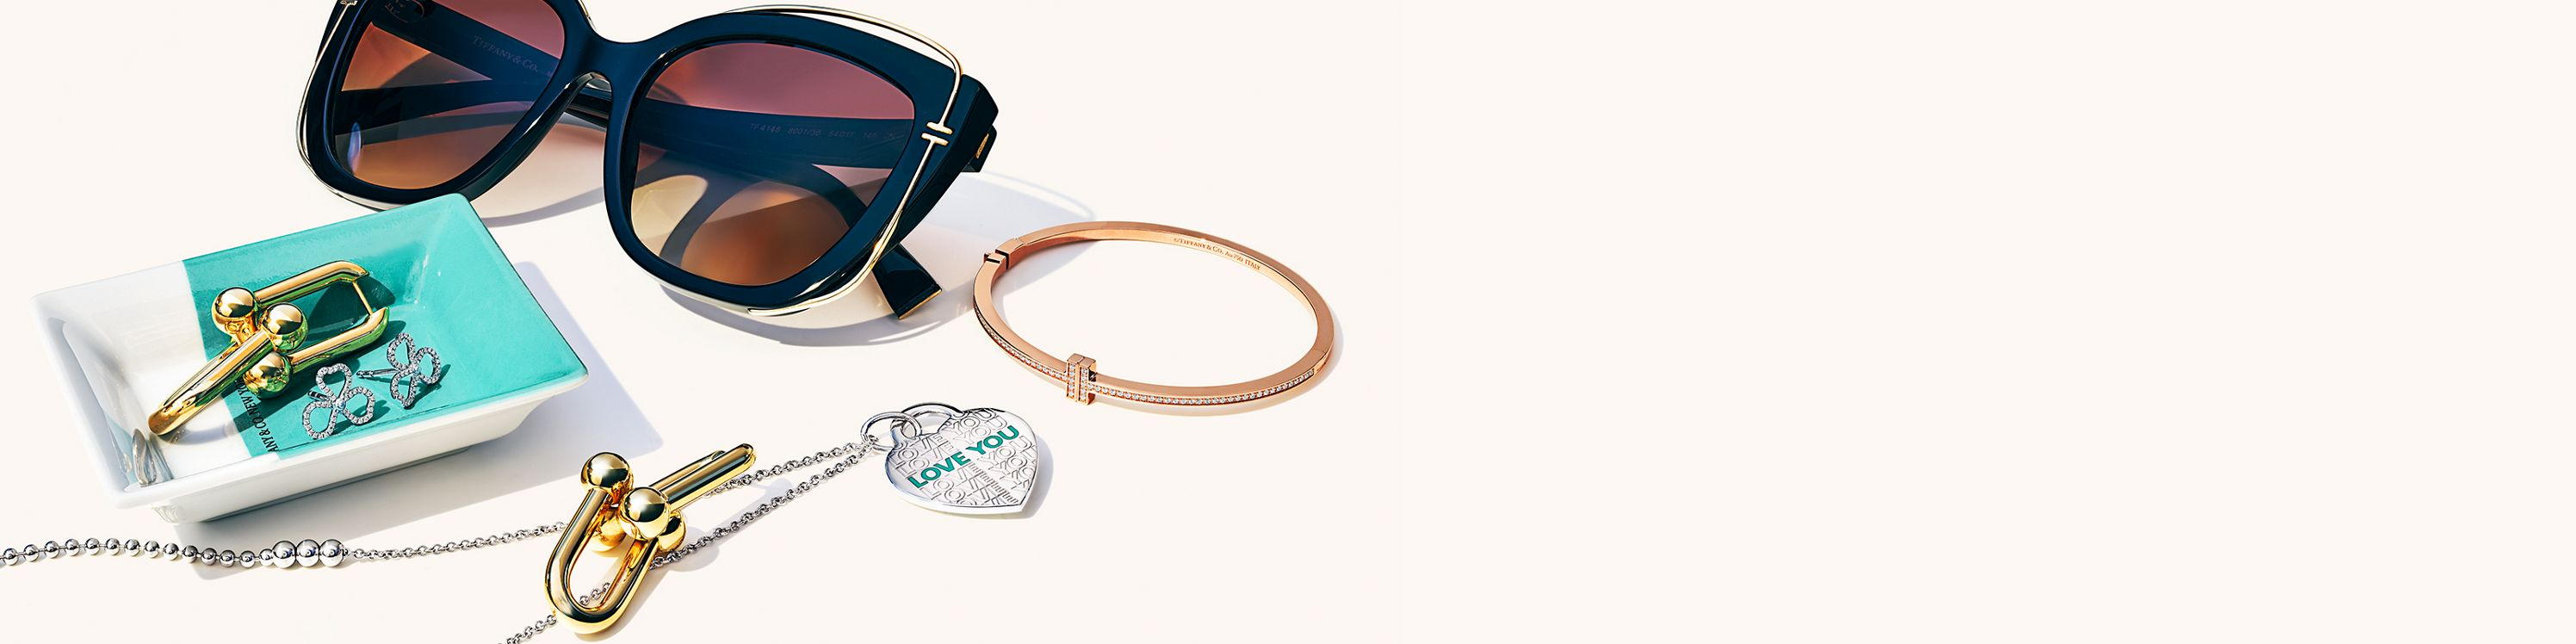 Ideas de regalos para ella de Tiffany & Co.